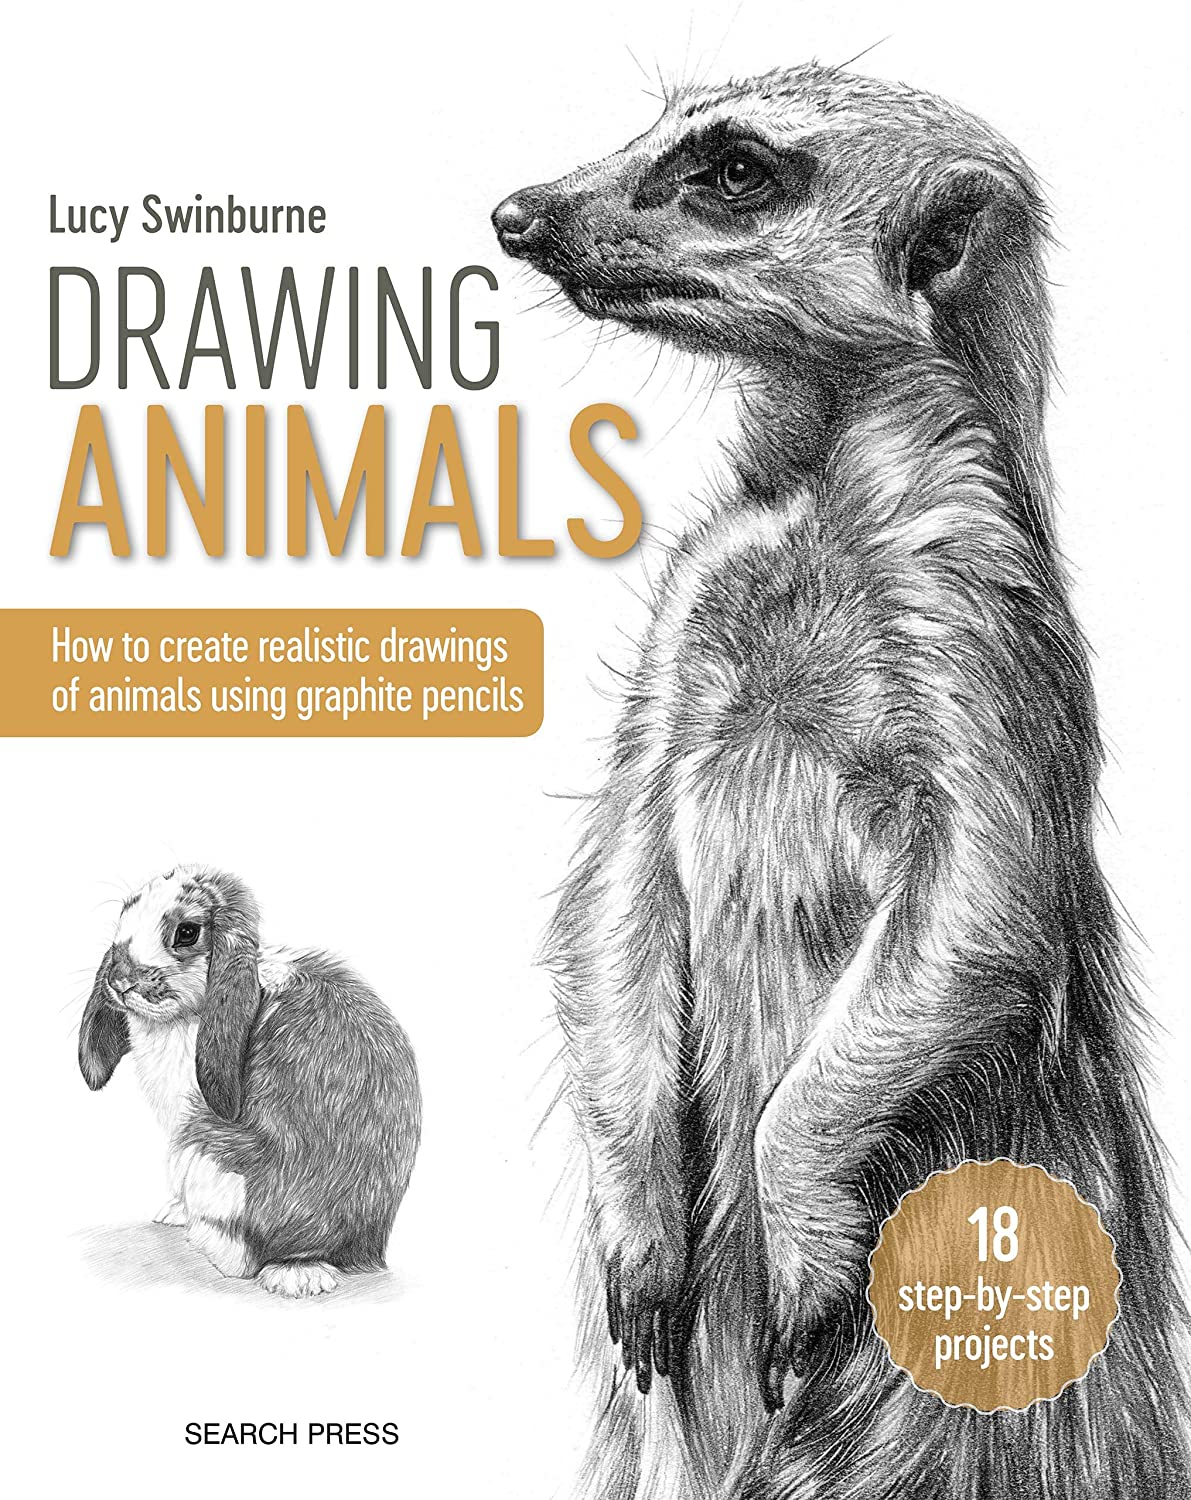 Drawing Animals How To Create Realistic Drawings Of Animals Using Graphite Pencils Ebook Swinburne Lucy Amazon Com Au Kindle Store